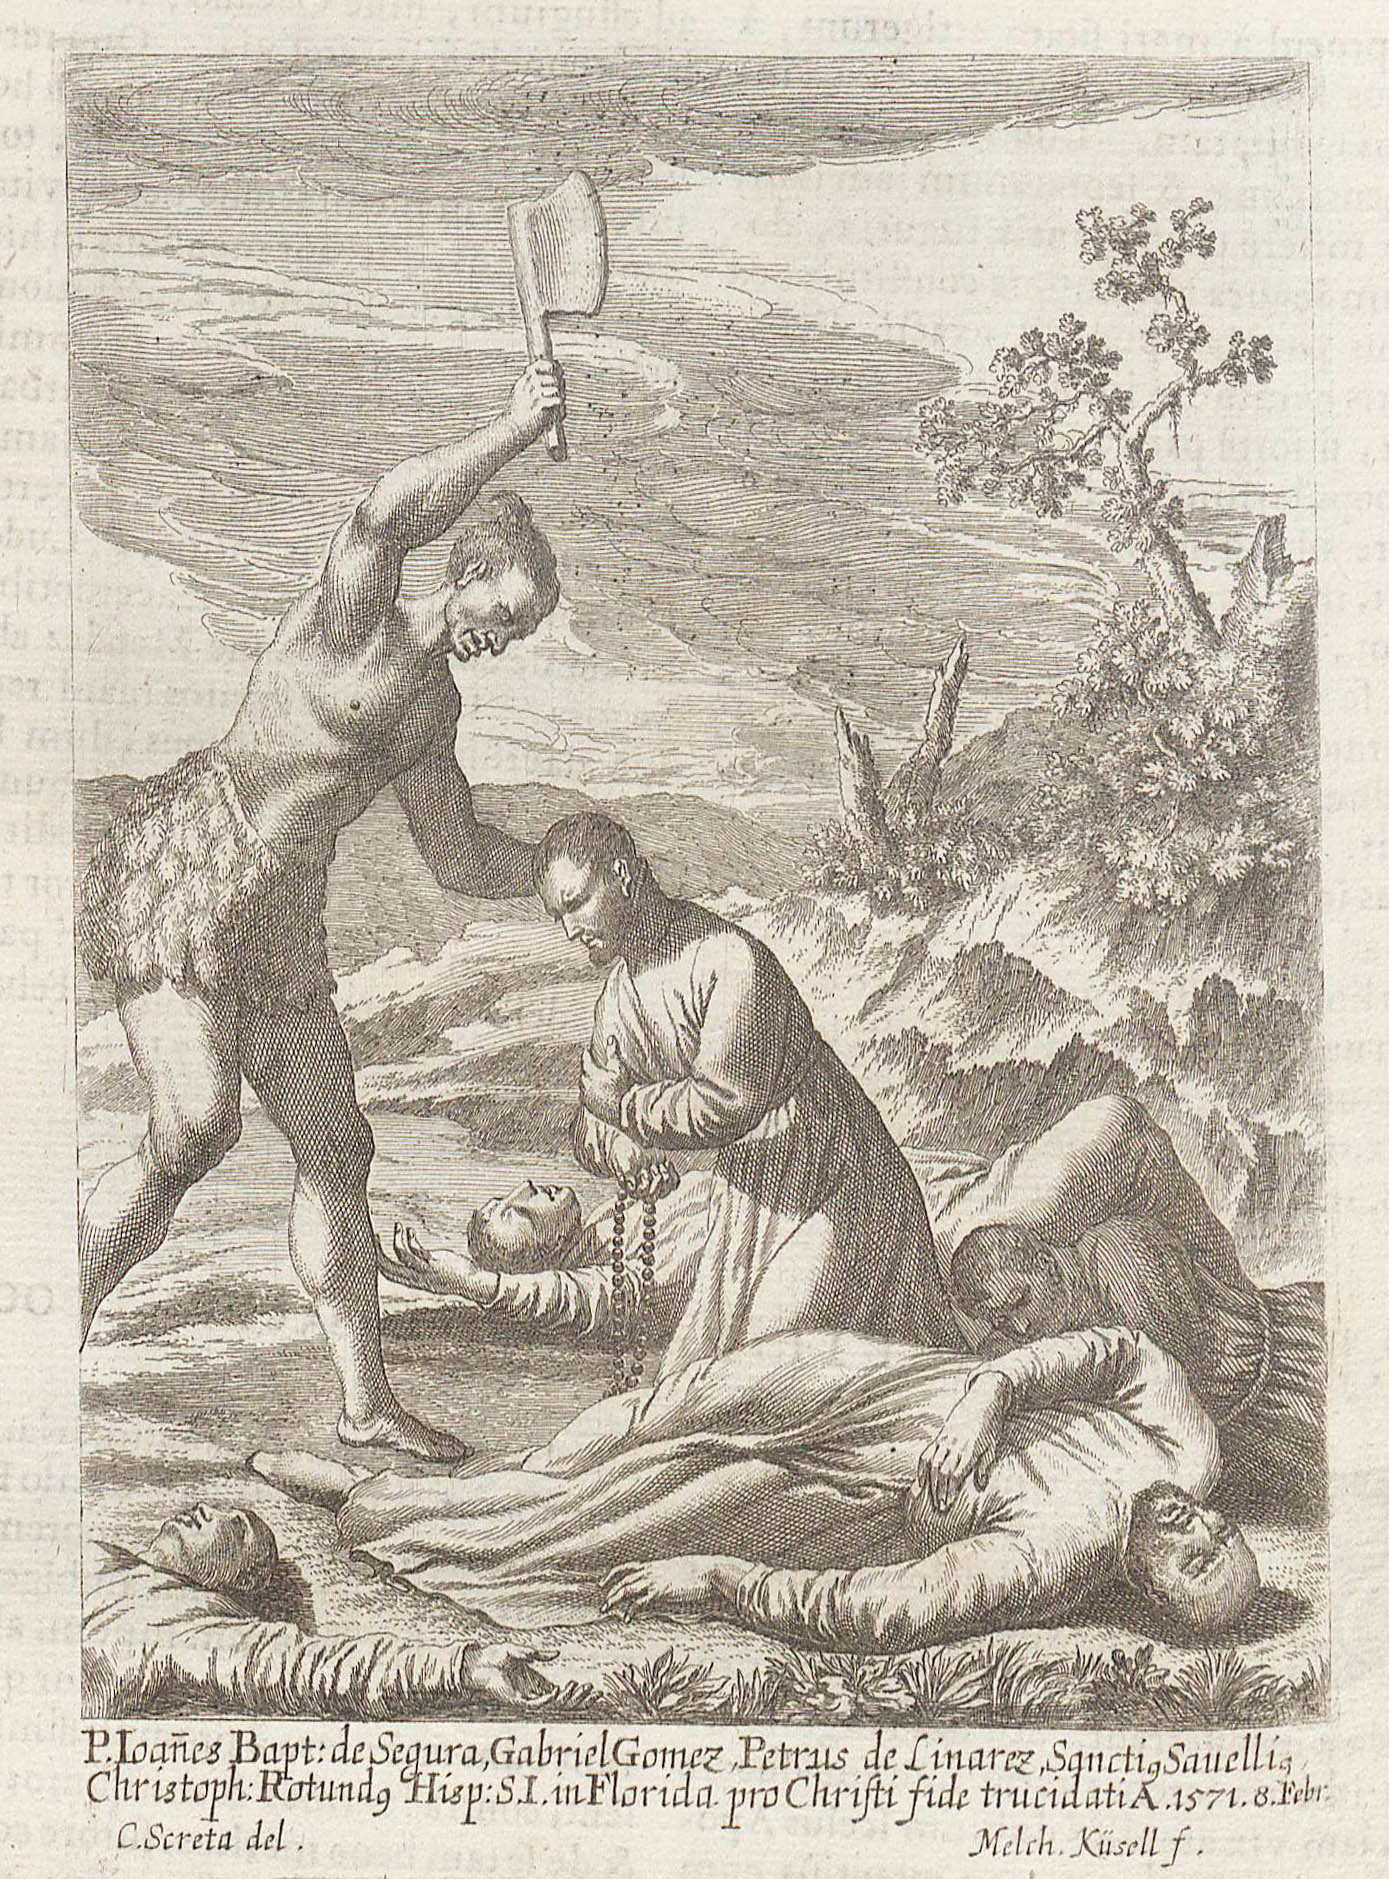 In his book about Catholic martyrs, 17th-century author Mathias Tanner included this engraving and the story of Don Luis de Velasco killing Spanish Jesuit missionaries who had founded a colony in what became Virginia.